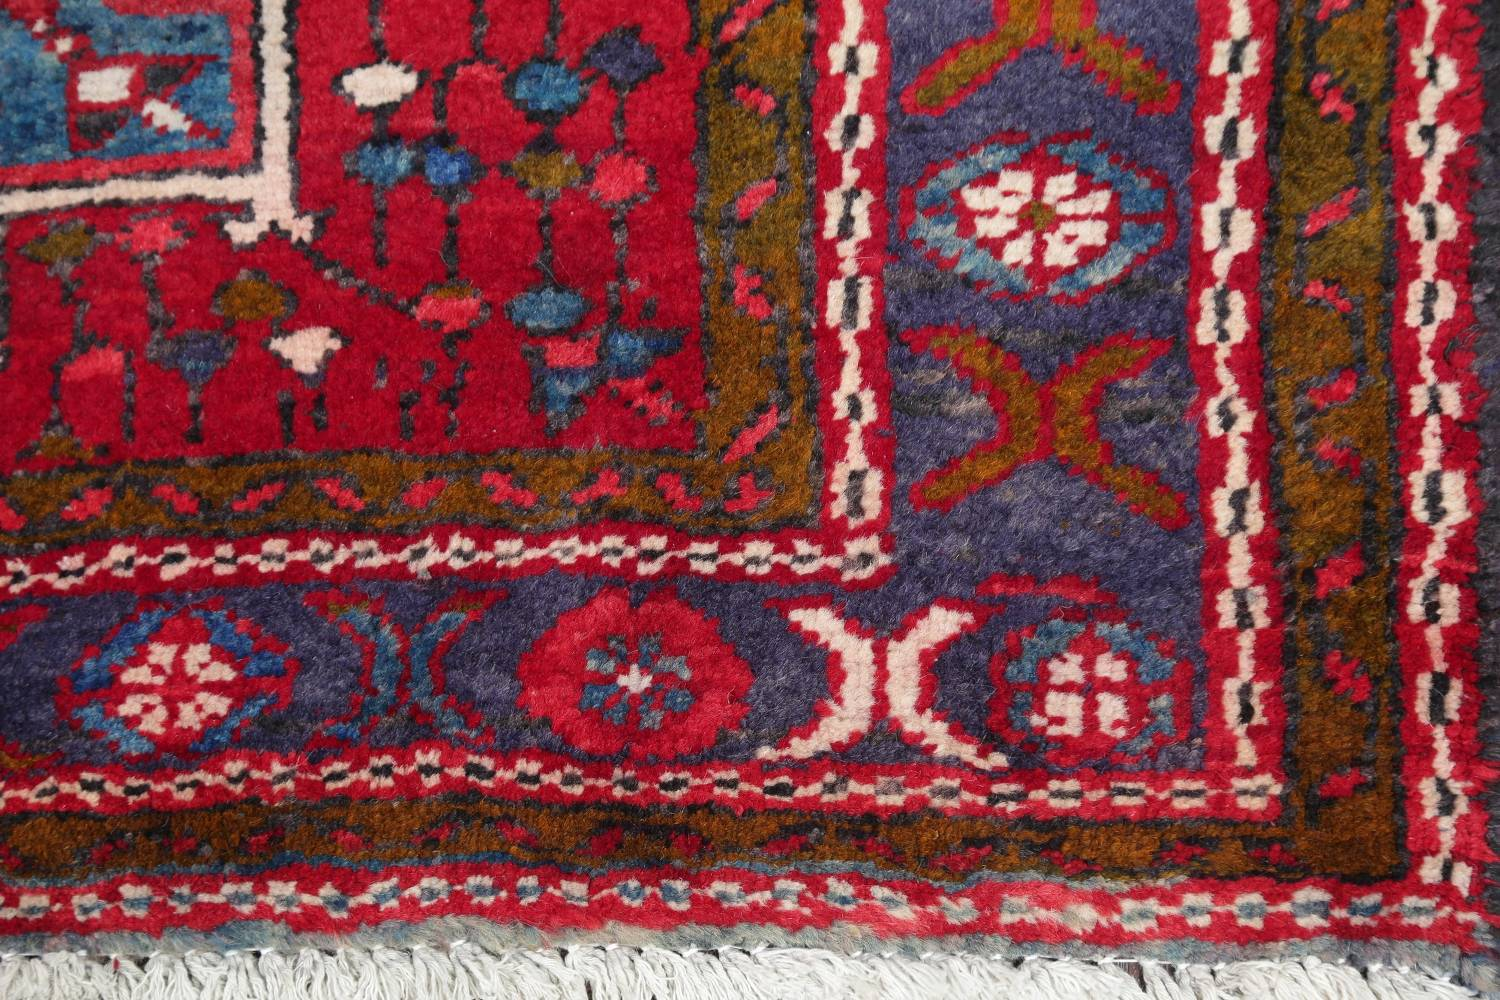 One-of-a-Kind Red Geometric Heriz Persian Hand-Knotted 4x13 Wool Runner Rug image 6